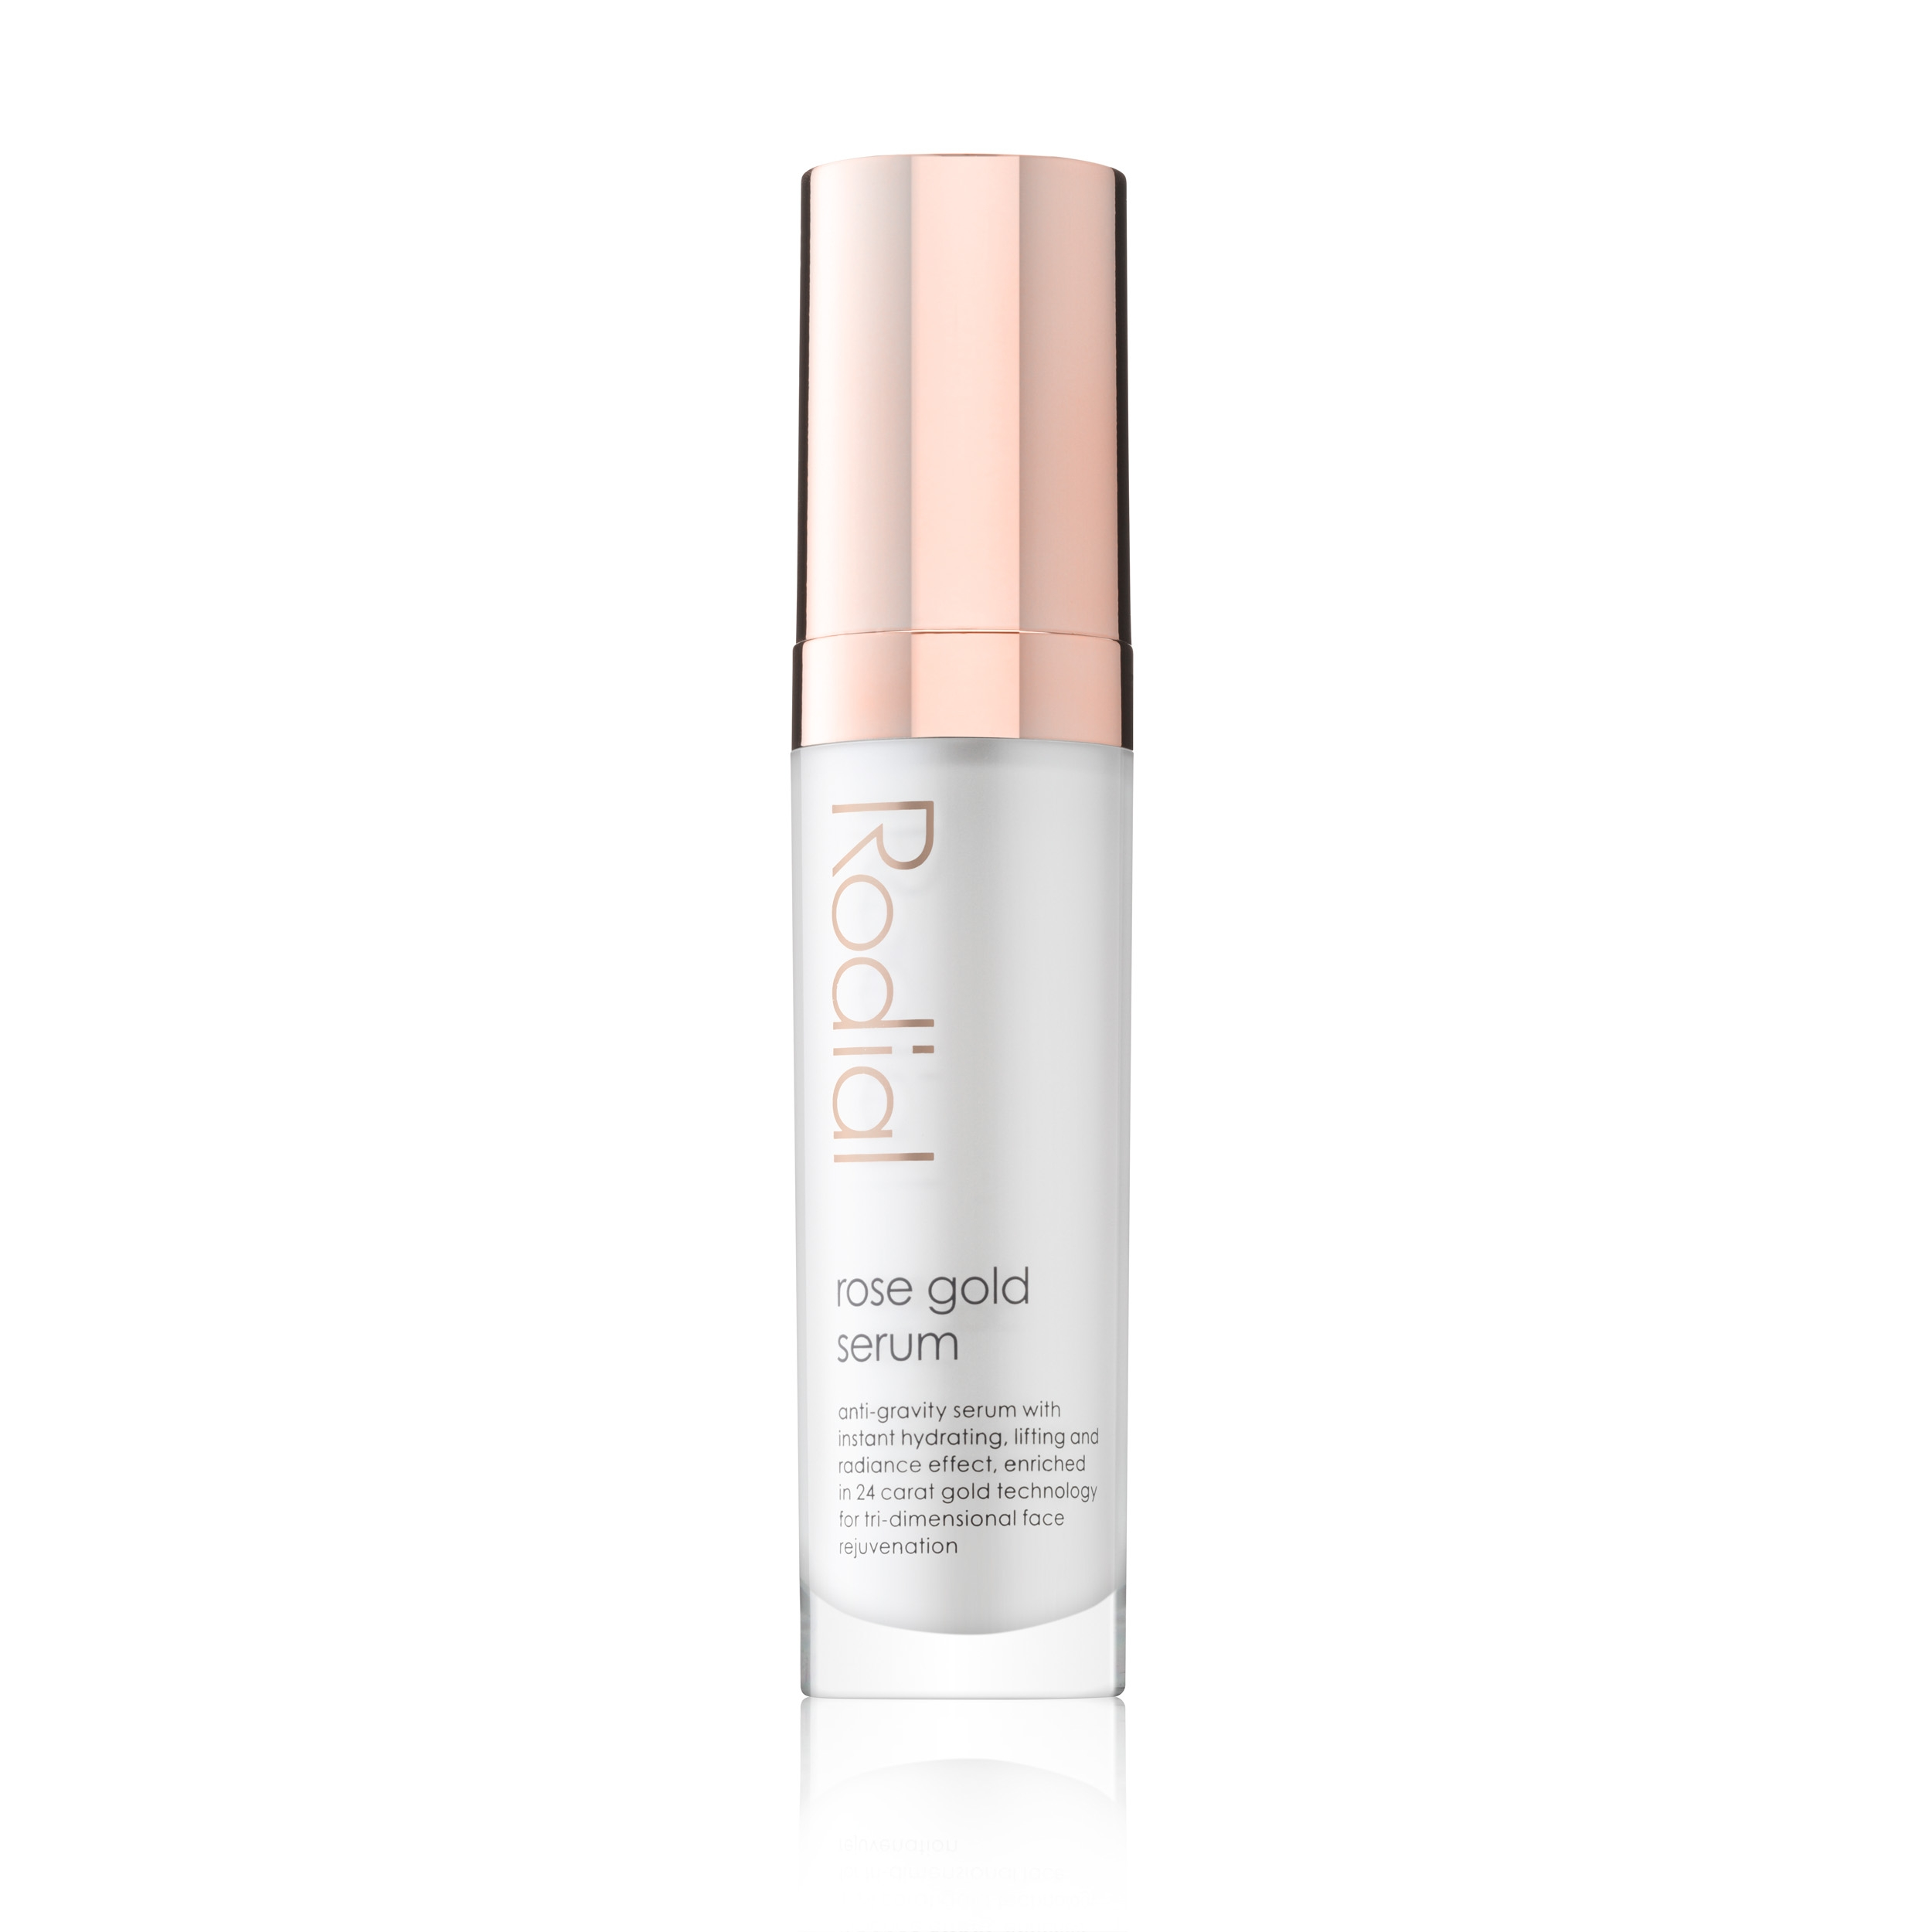 rose_gold_serum-30ml-web.jpg